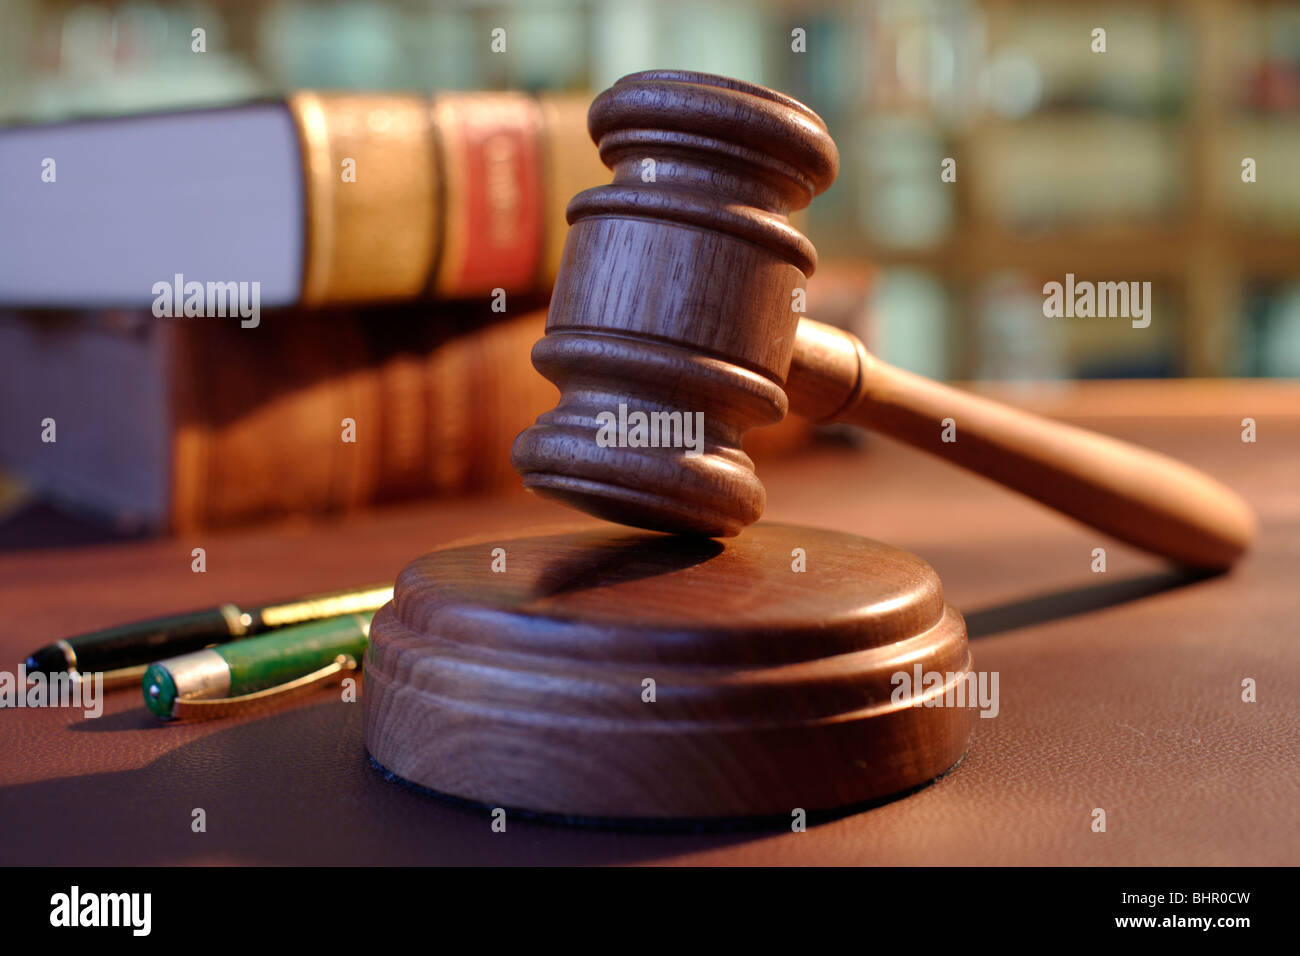 gavel in the court room - Stock Image